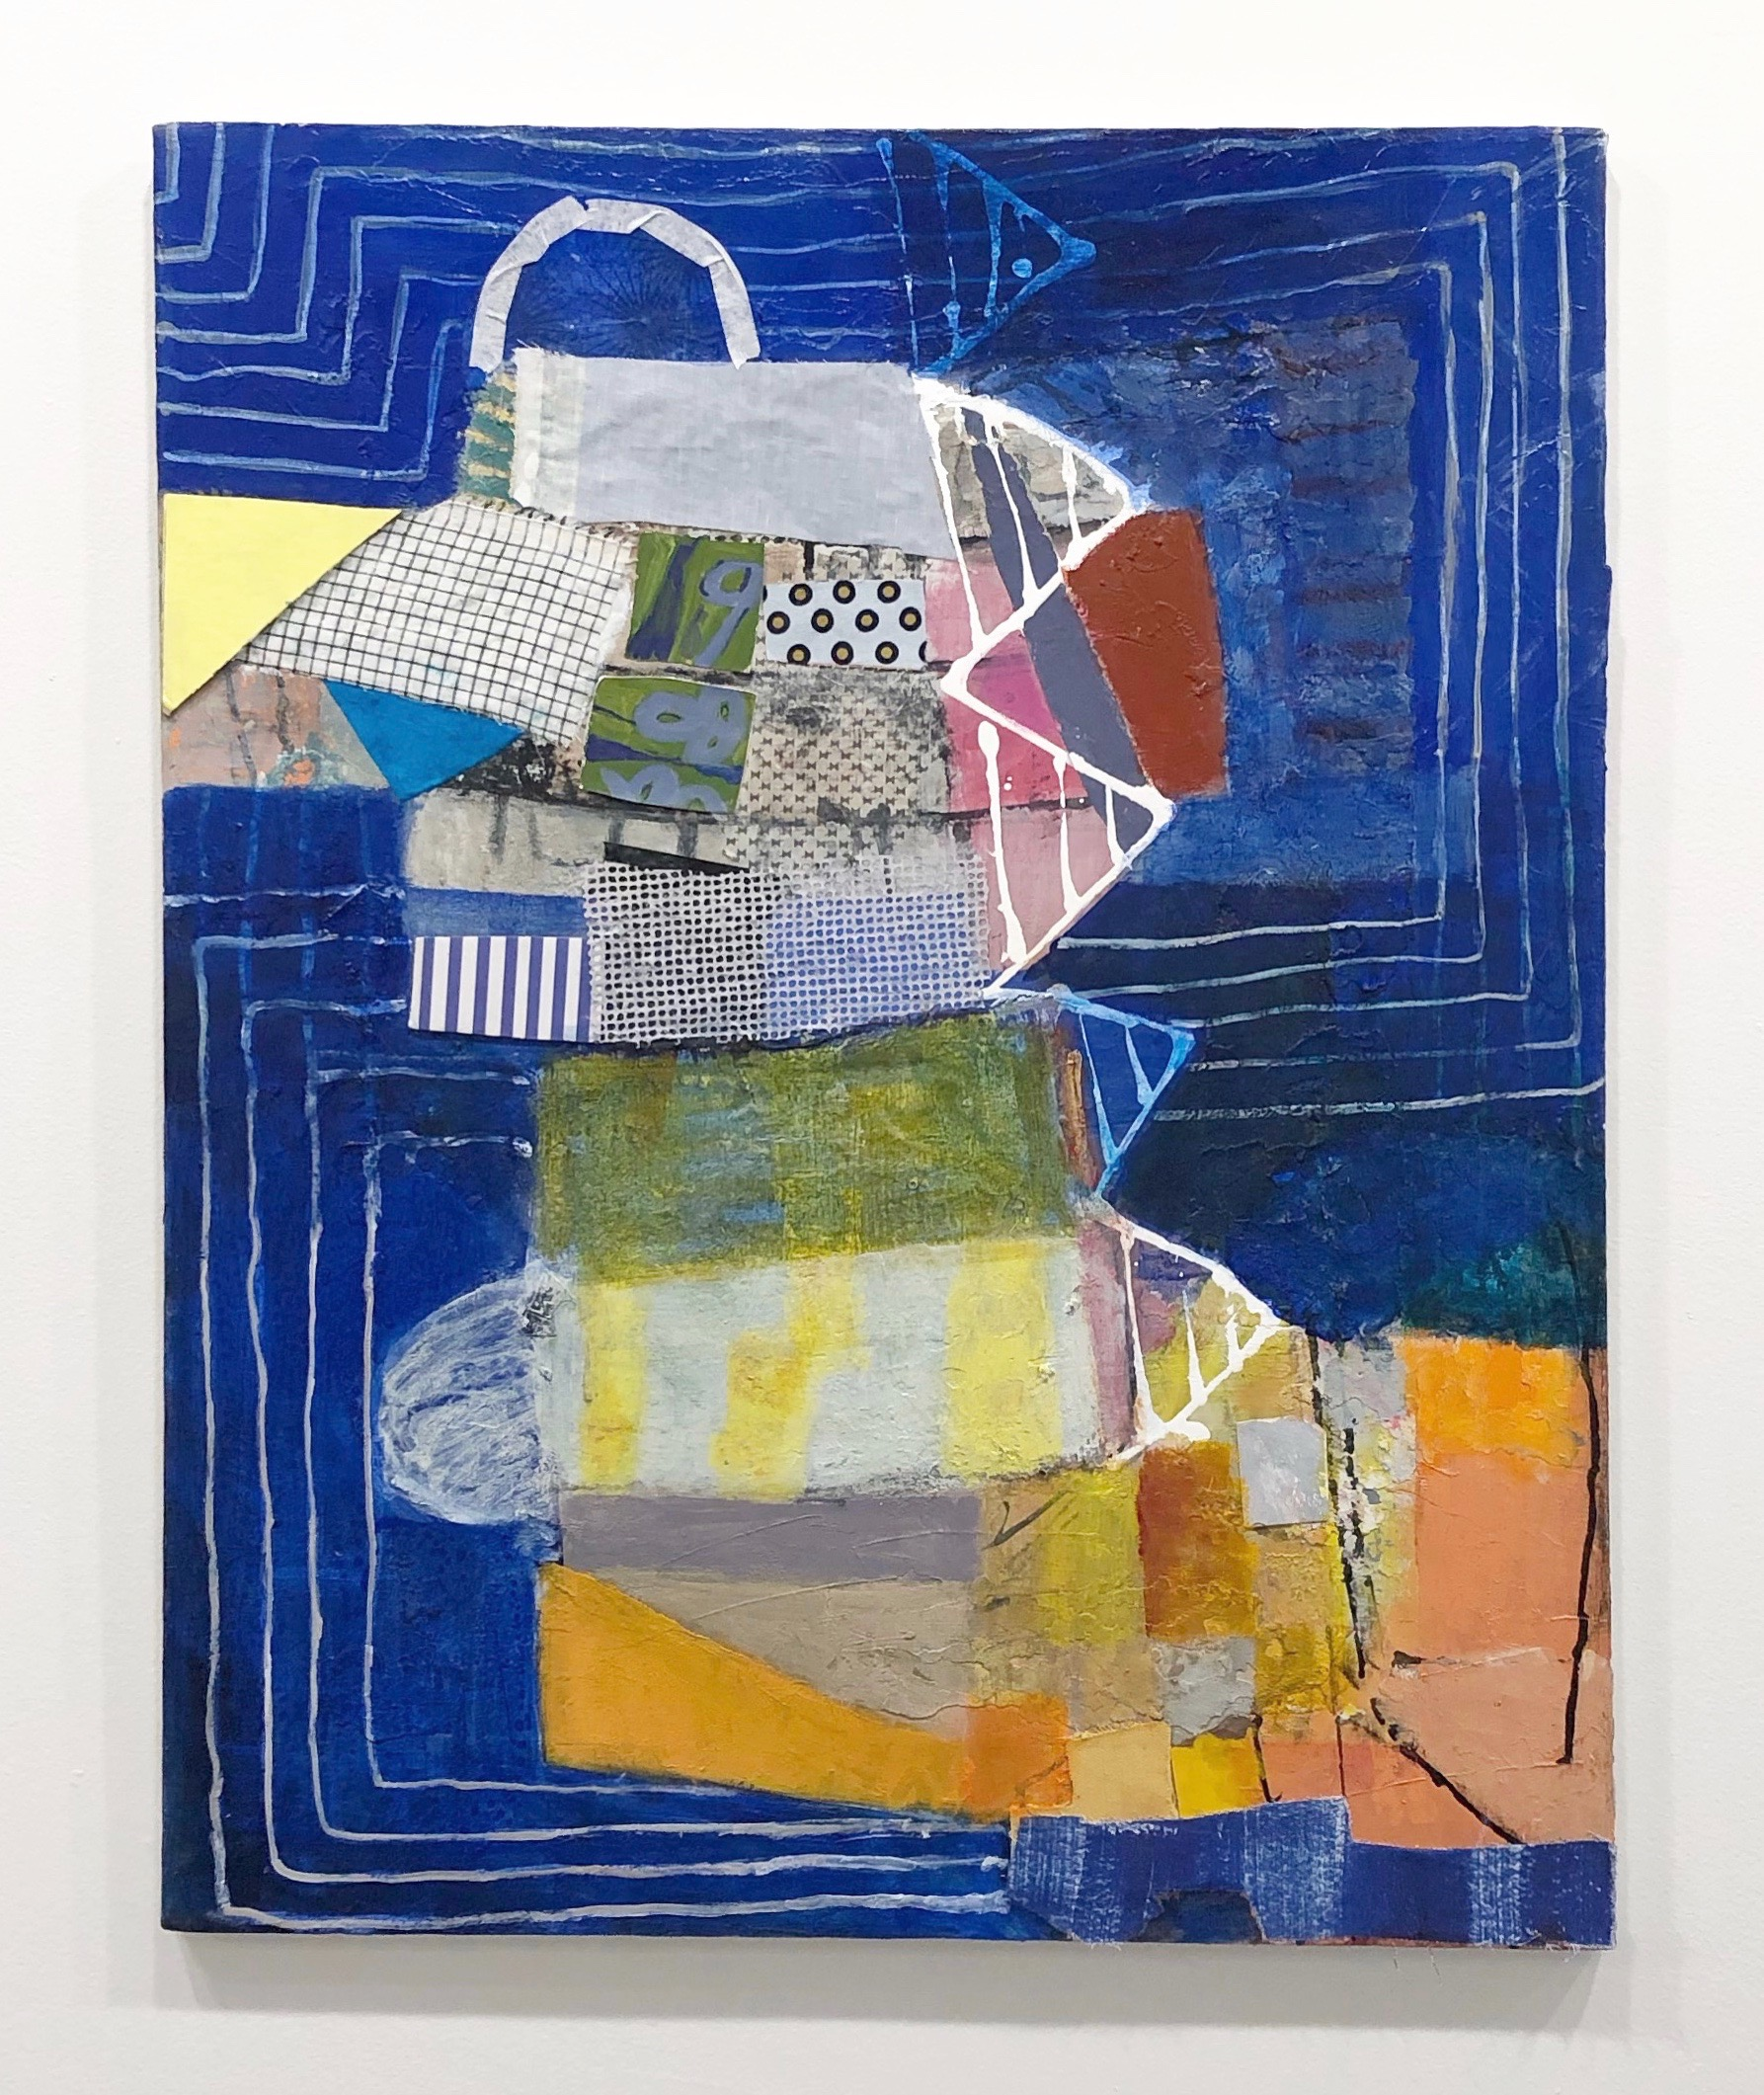 Collage on Canvas, 2018 Acrylic, paper and fabric on canvas 30x24 in